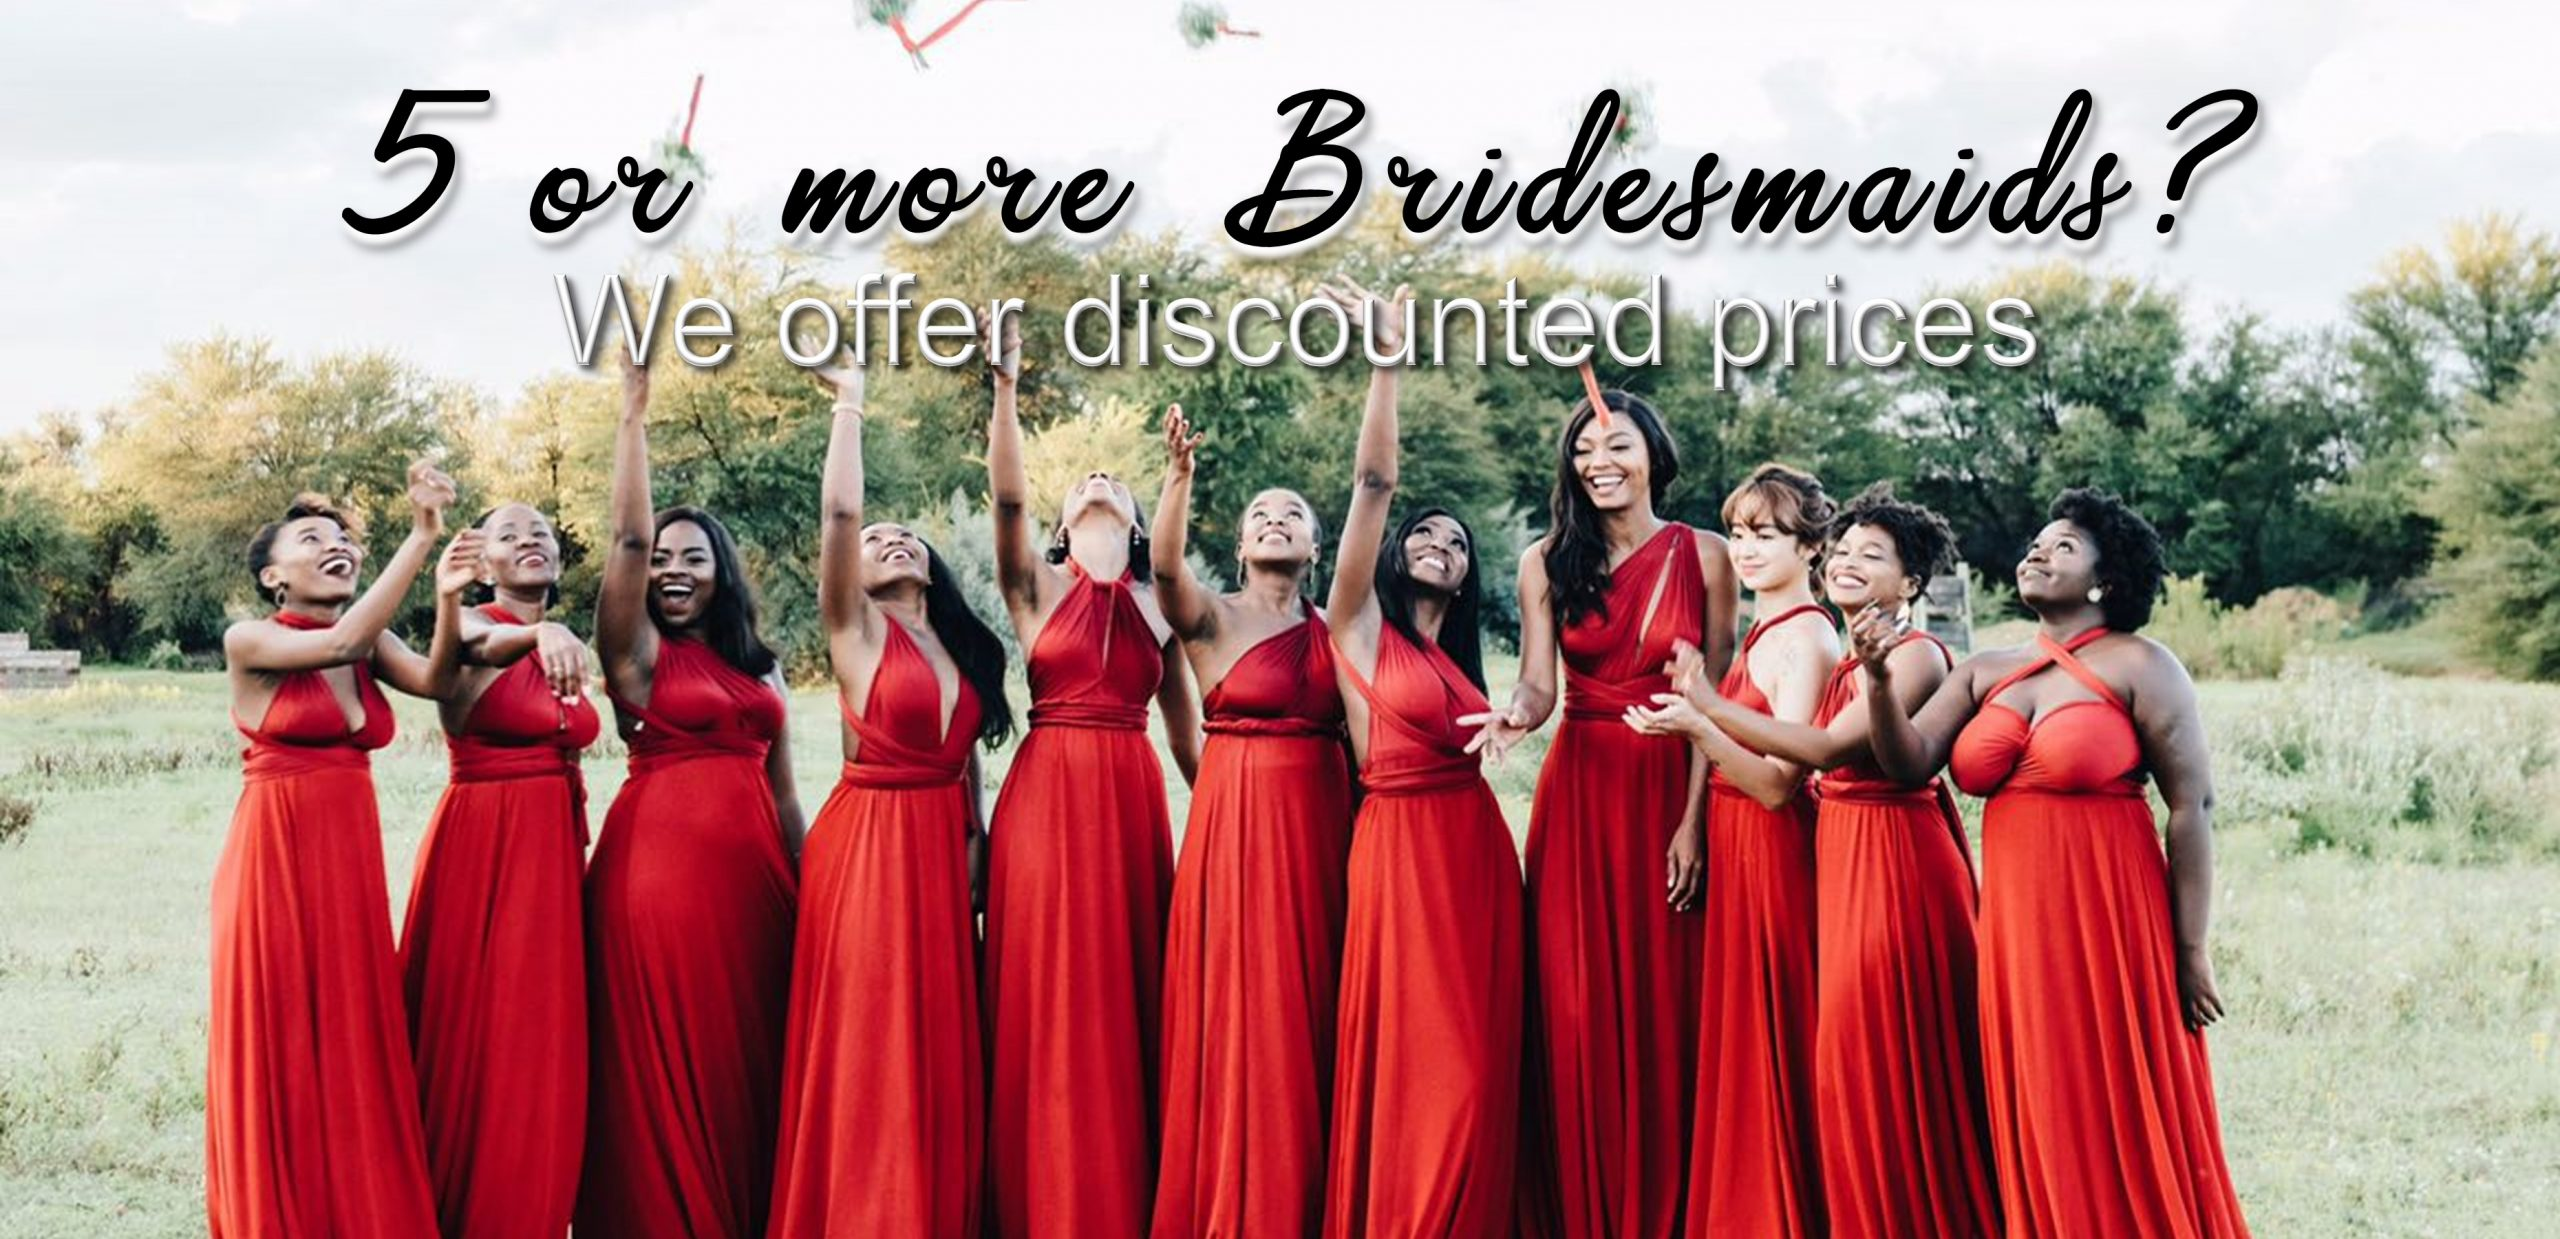 5 or more Bridesmaid dresses?